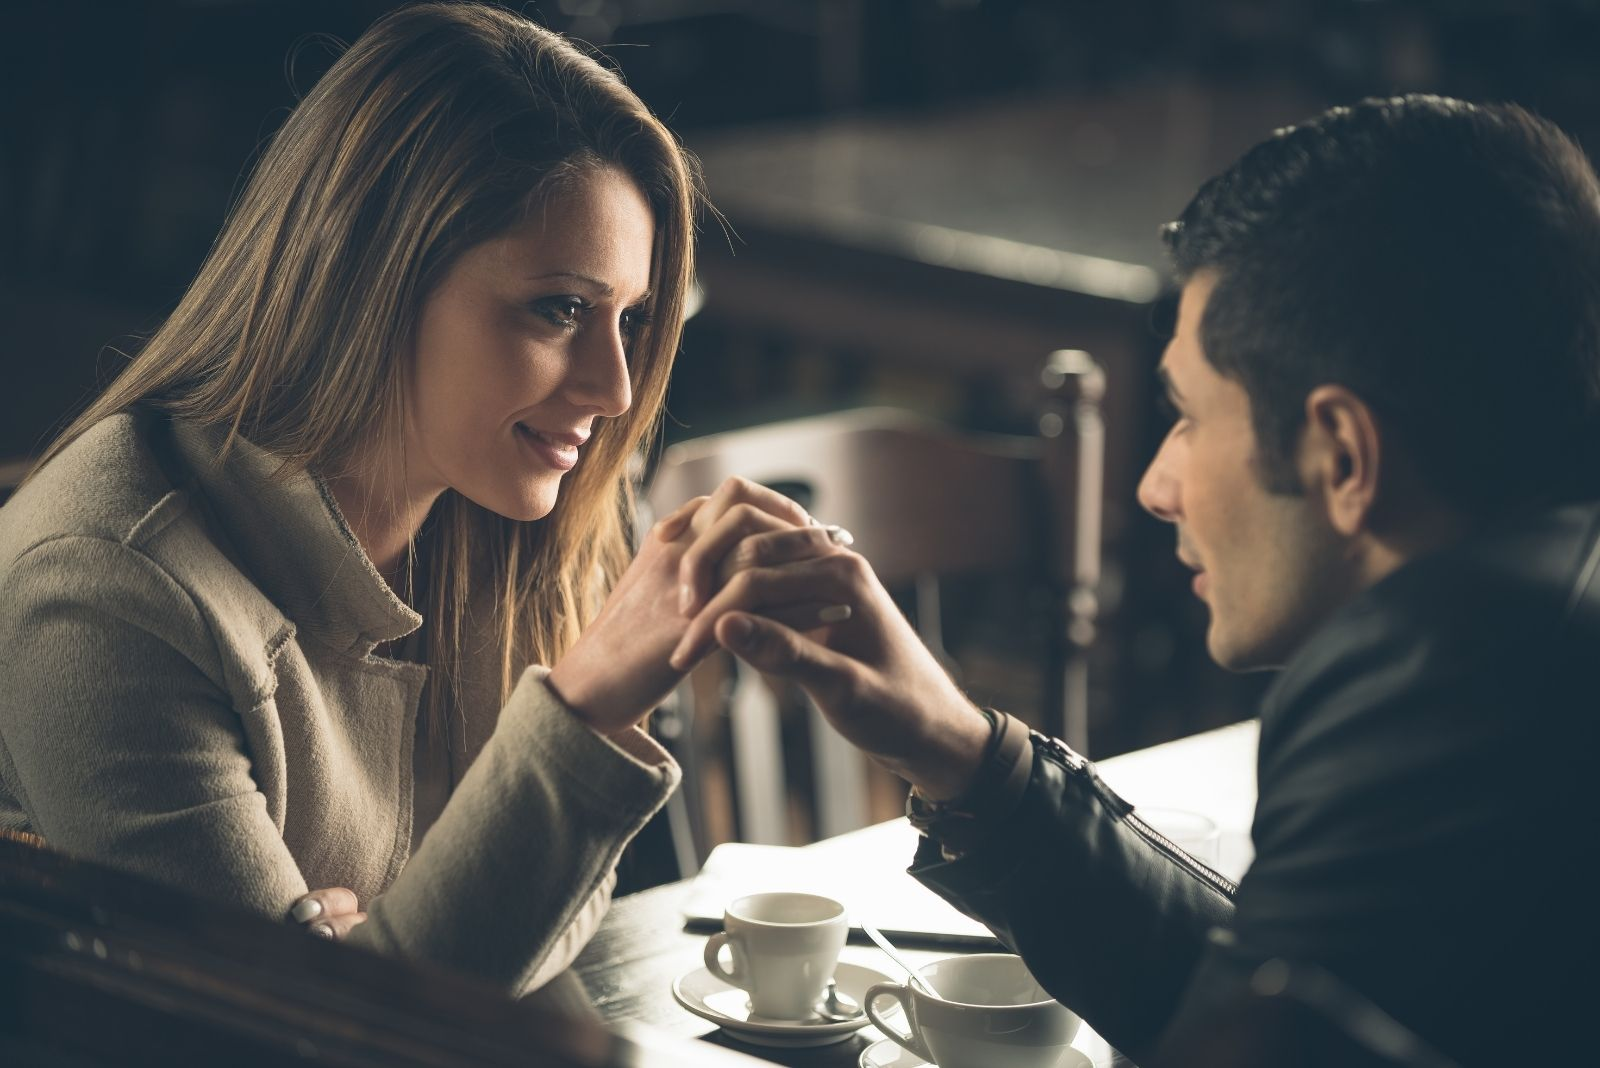 romantically clasping hands of the dating couple inside a cafe